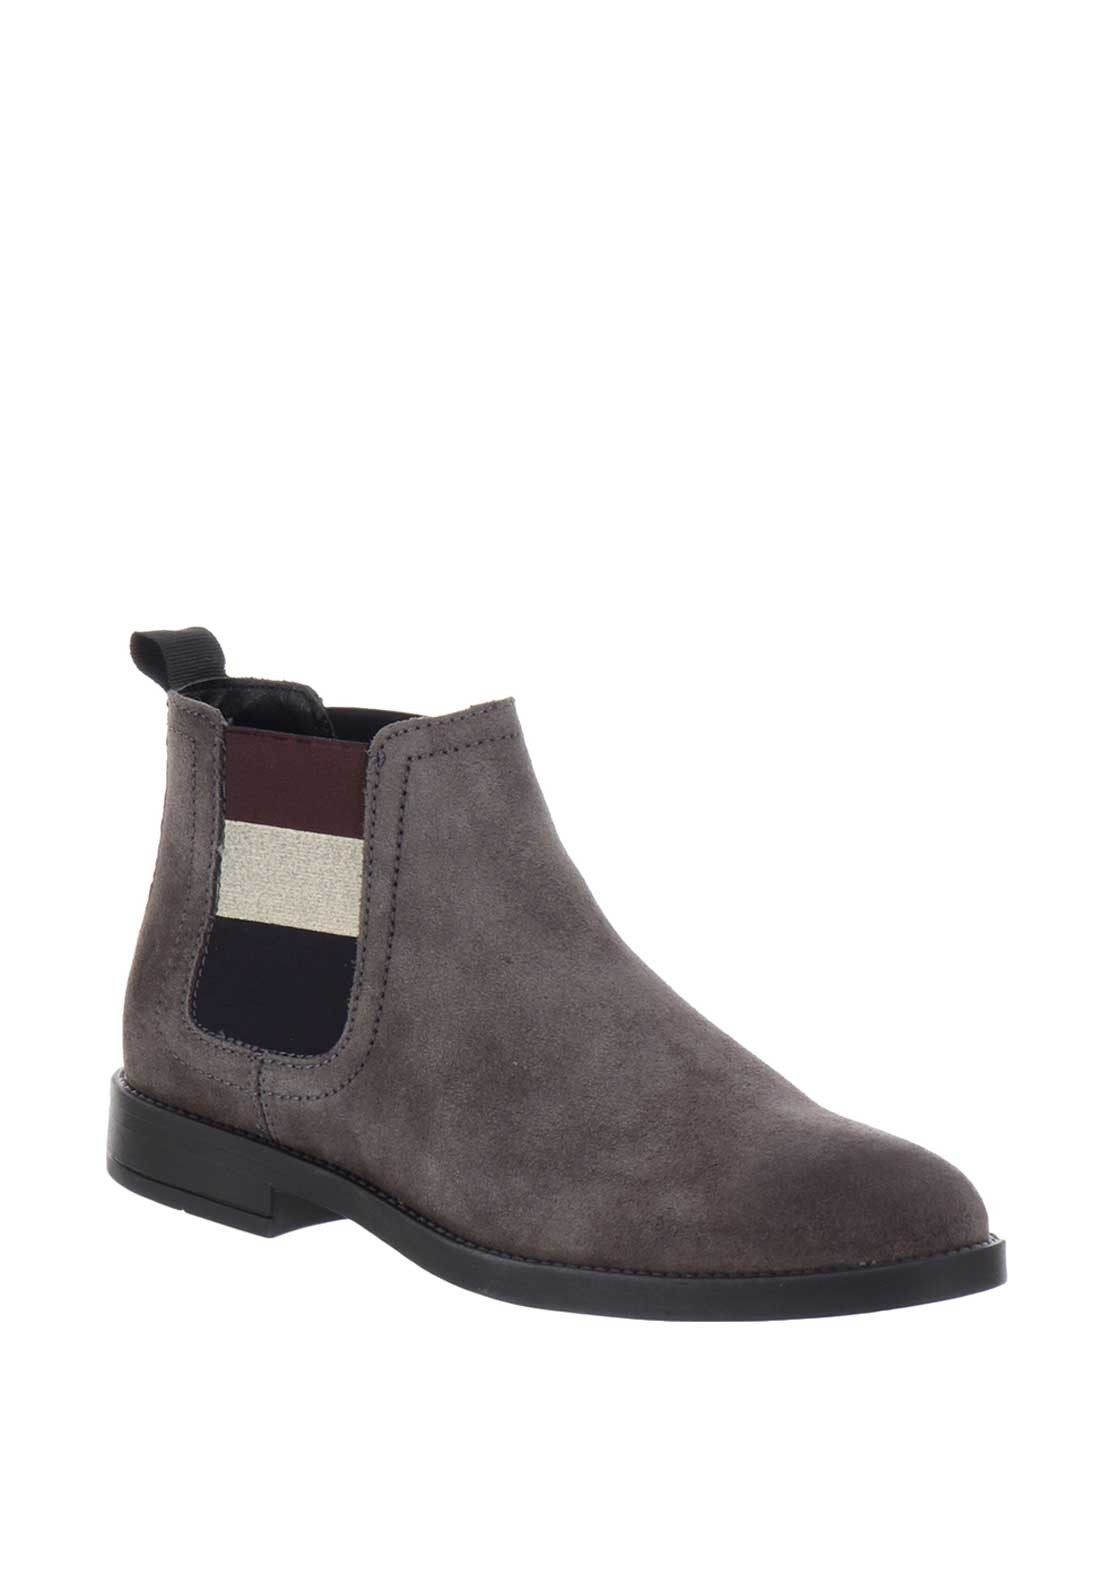 best selling terrific value the best Tommy Jeans Womens Nubuck Chelsea Boots, Grey